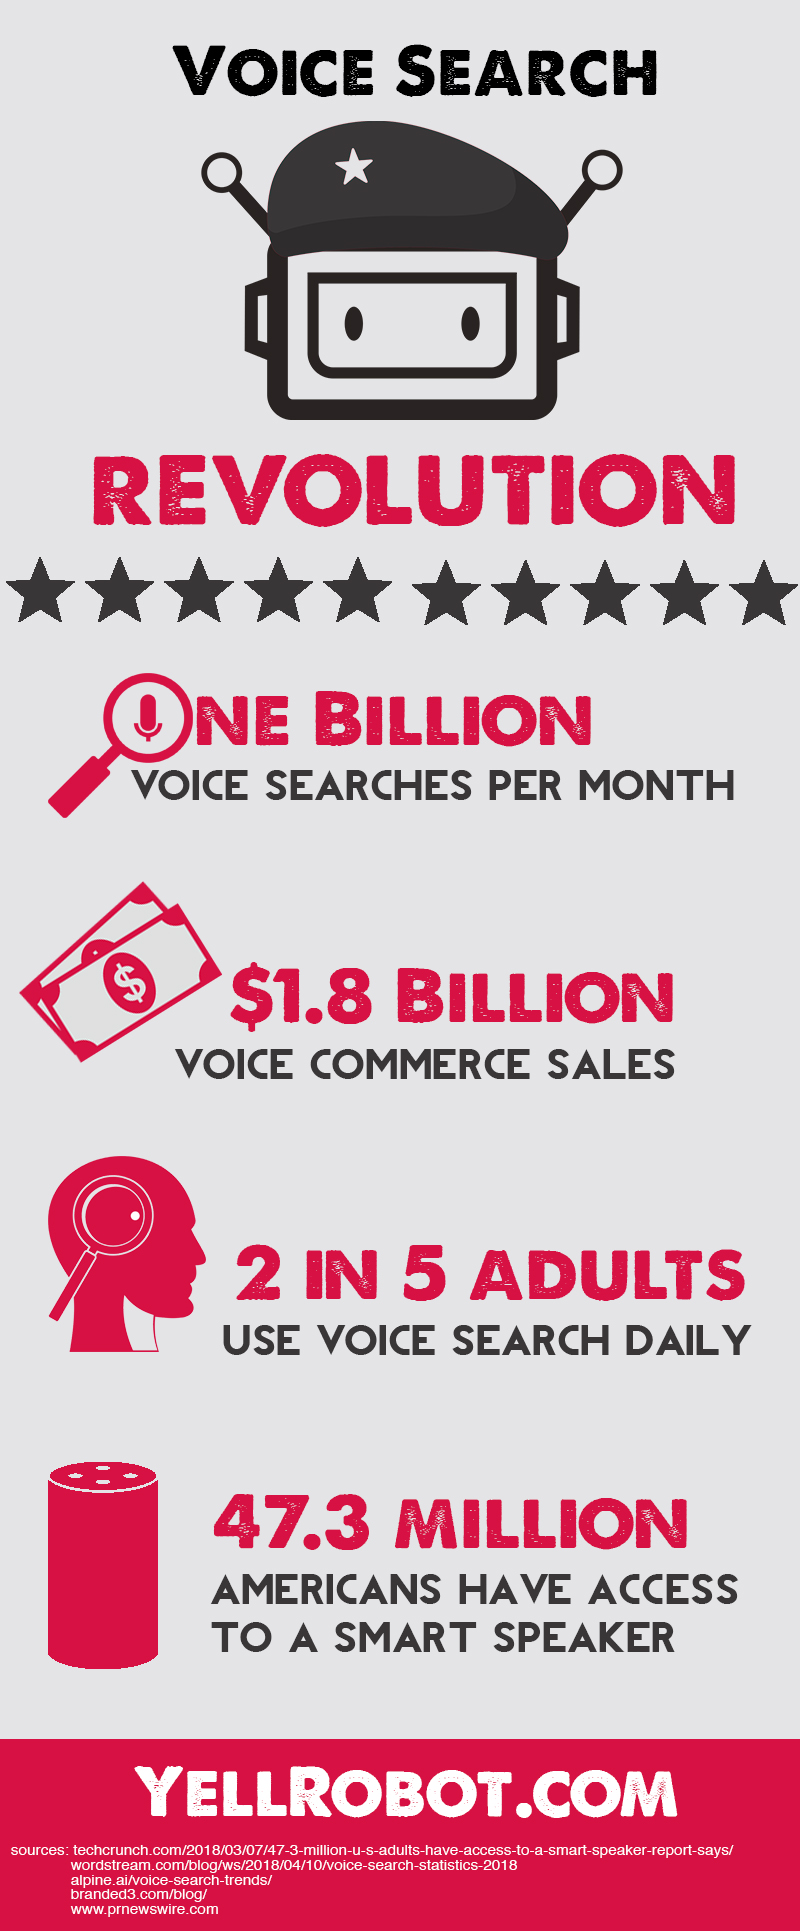 YellRobot_Voice Search InfoGraphic